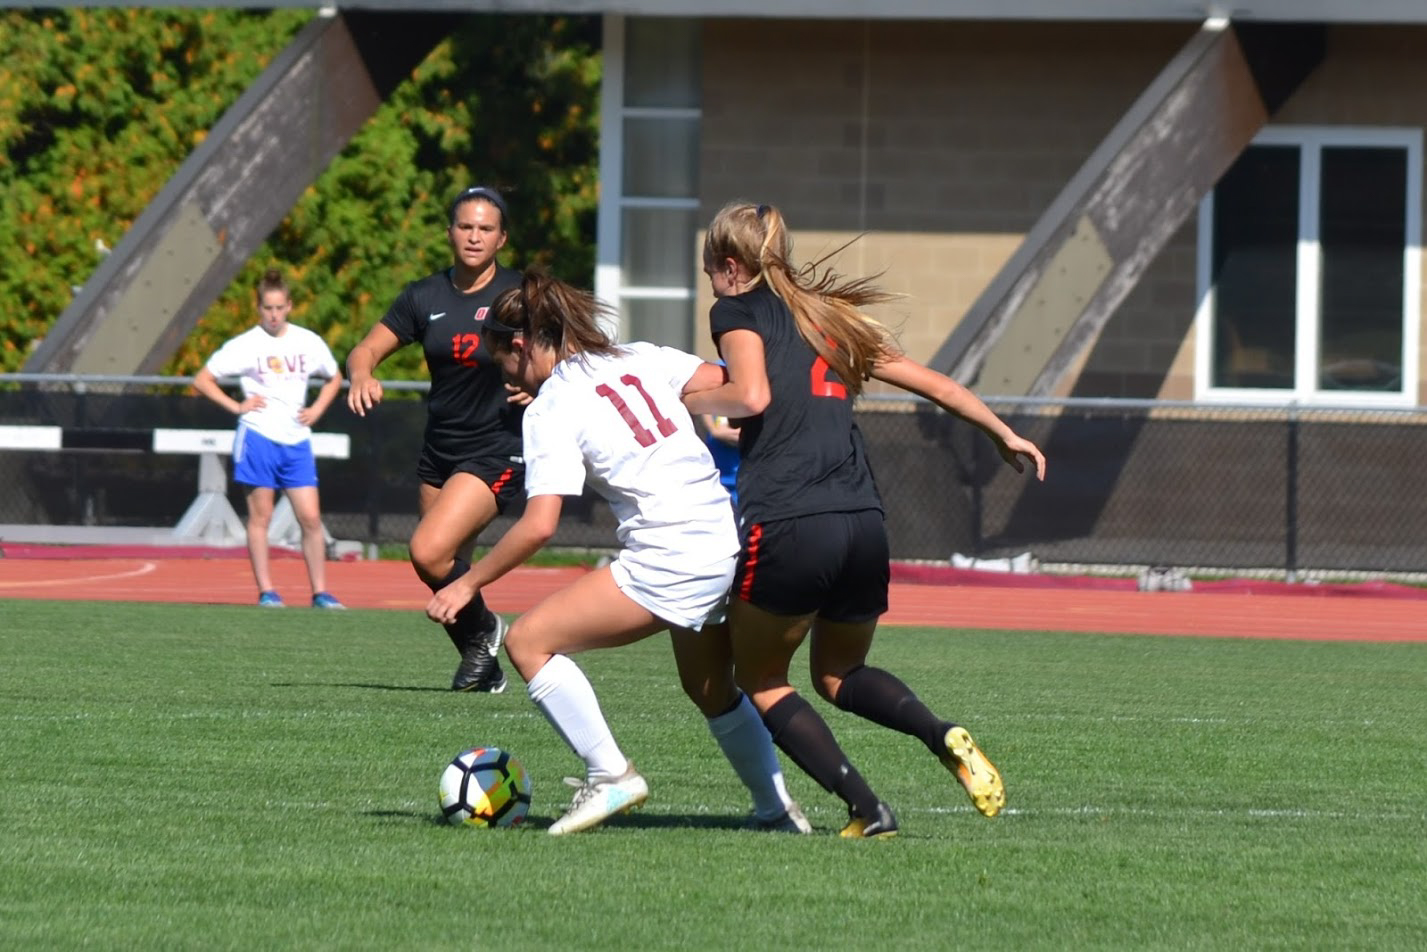 First-year midfielder Sydnie Savarese fights for the ball in the Yeowomen's face-off against the Ohio Wesleyan University Battling Bishops Sept. 23. The Yeowomen will take the field tomorrow night against the Hiram College Terriers in Hiram, Ohio.